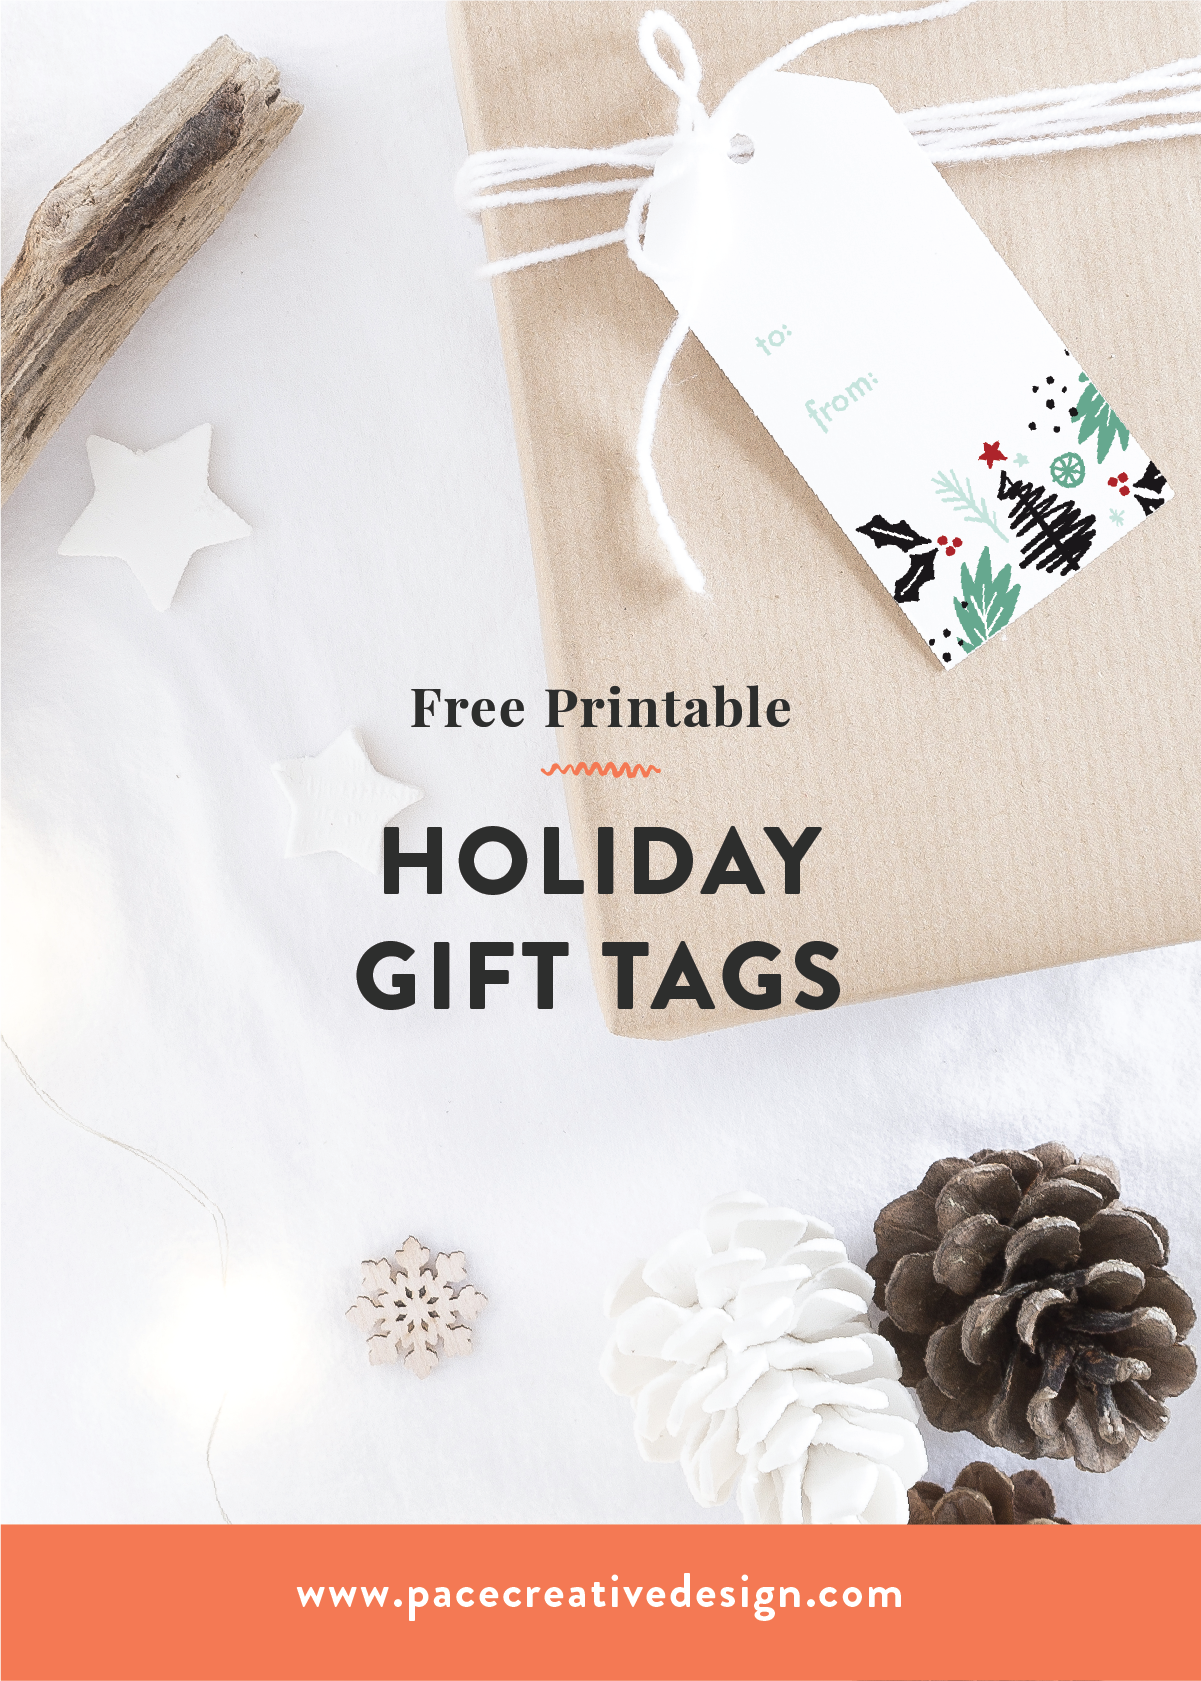 FREE Printable Holiday Gift Tags designed by Pace Creative Design Studio